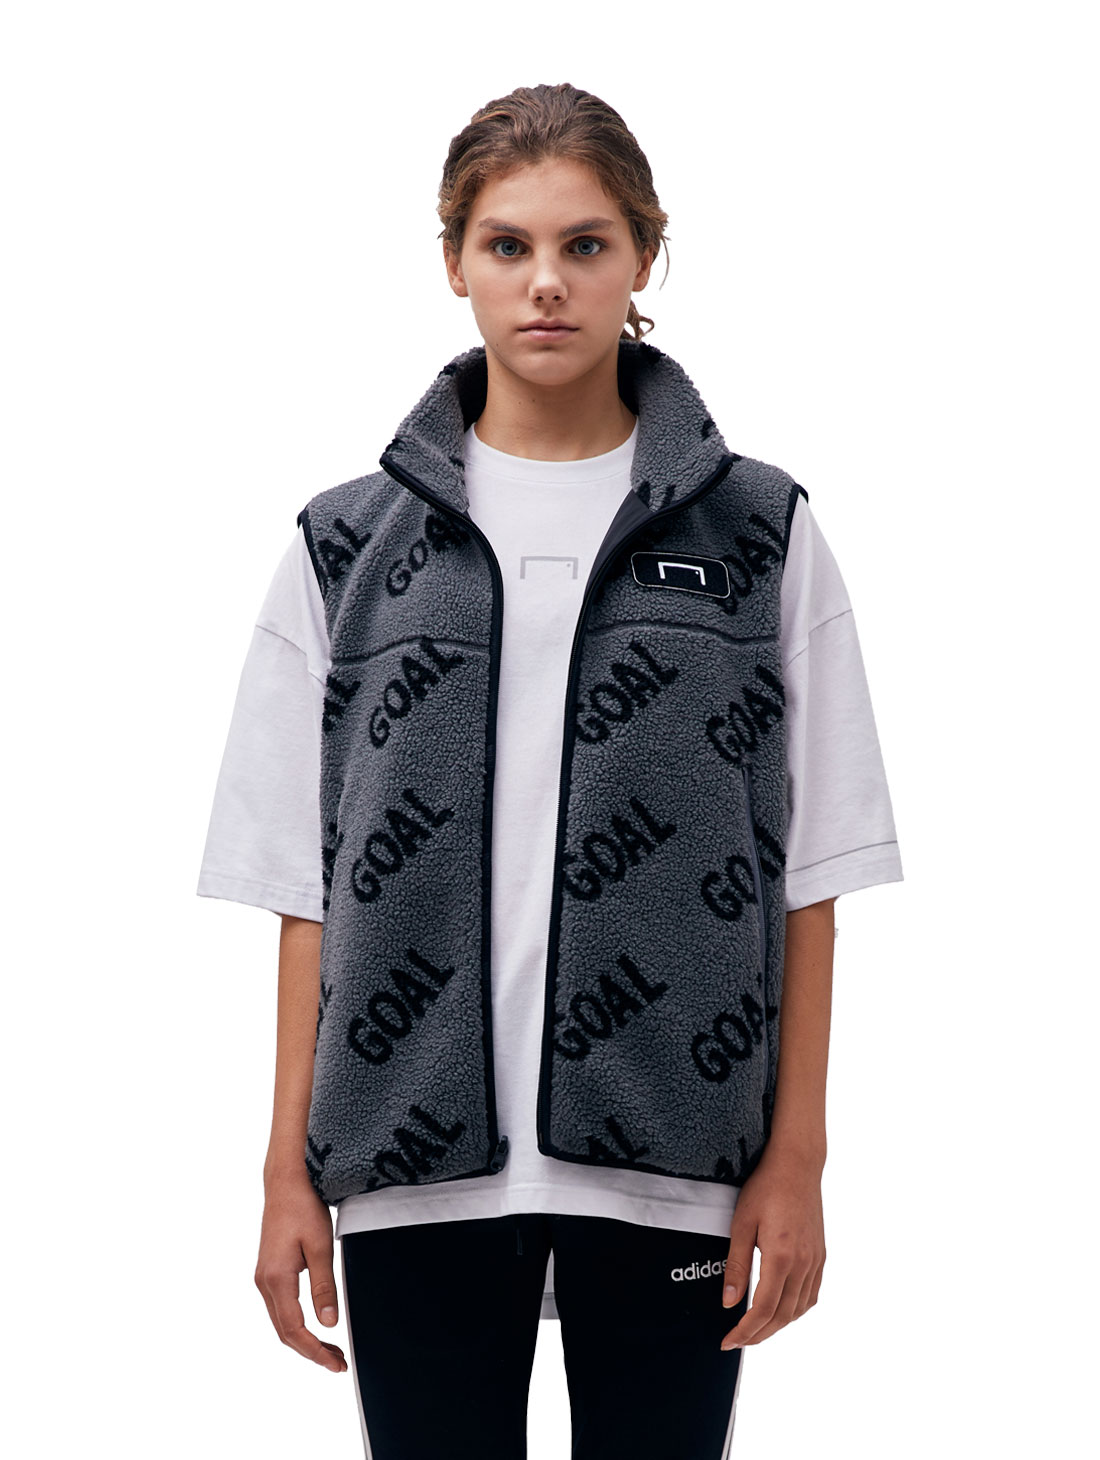 REVERSIBLE FLEECE VEST - GRAY/BLACK